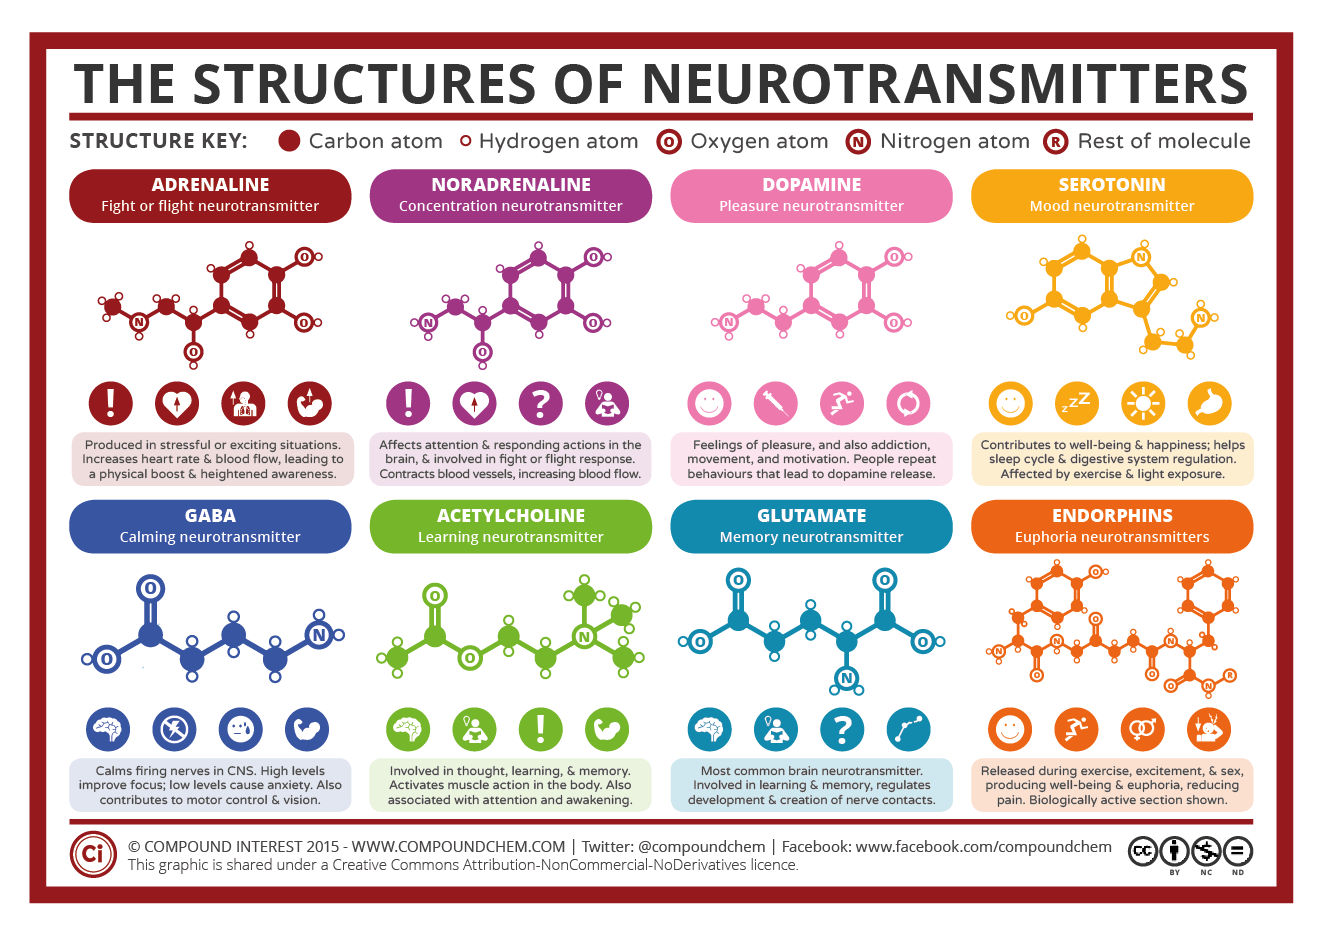 Compound interest a simple guide to neurotransmitters chemical structures of neurotransmitters ccuart Image collections